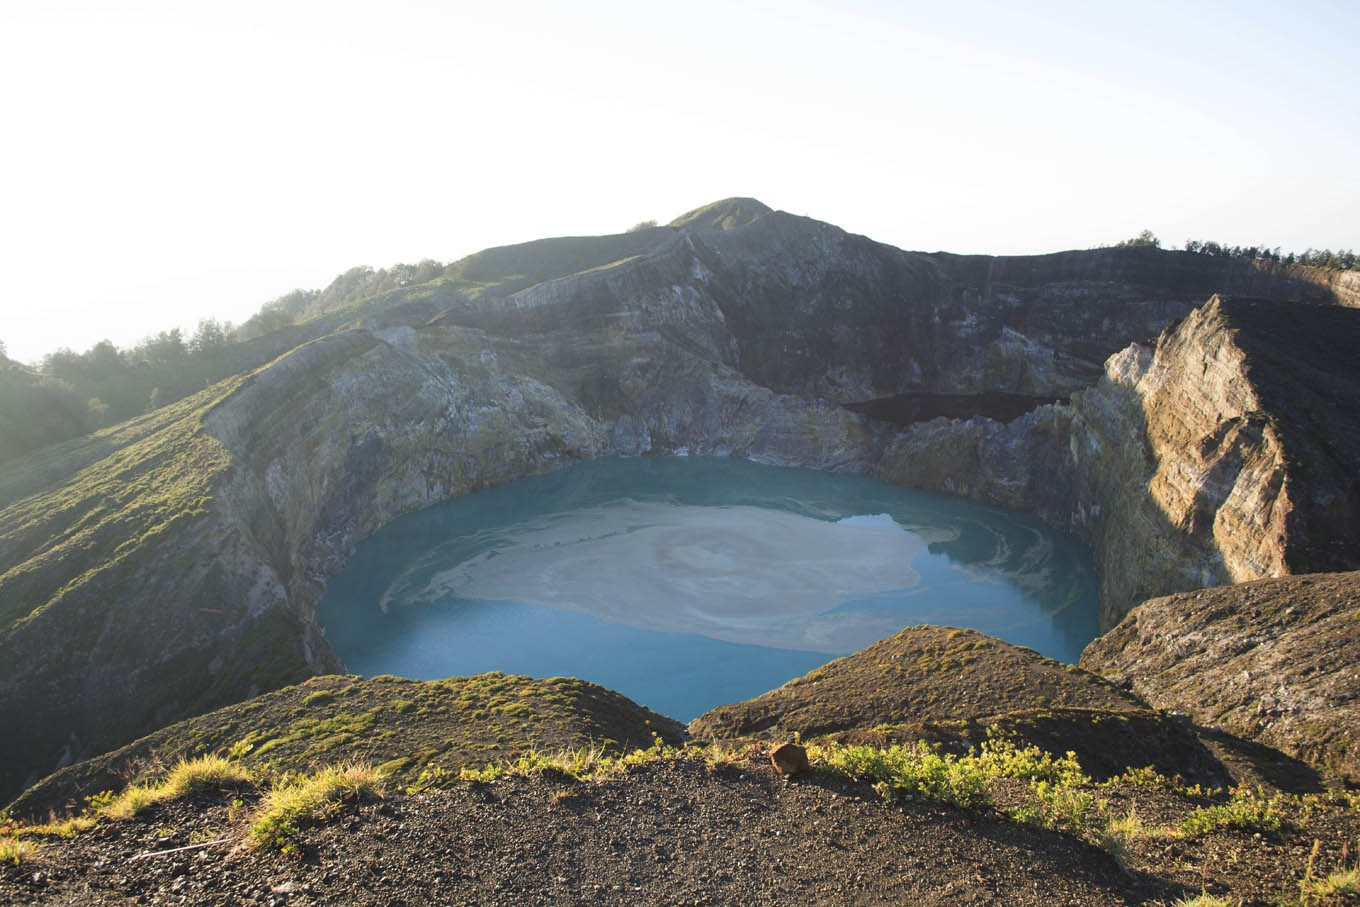 Trip to Kelimutu offered to IMF-World Bank annual meeting participants